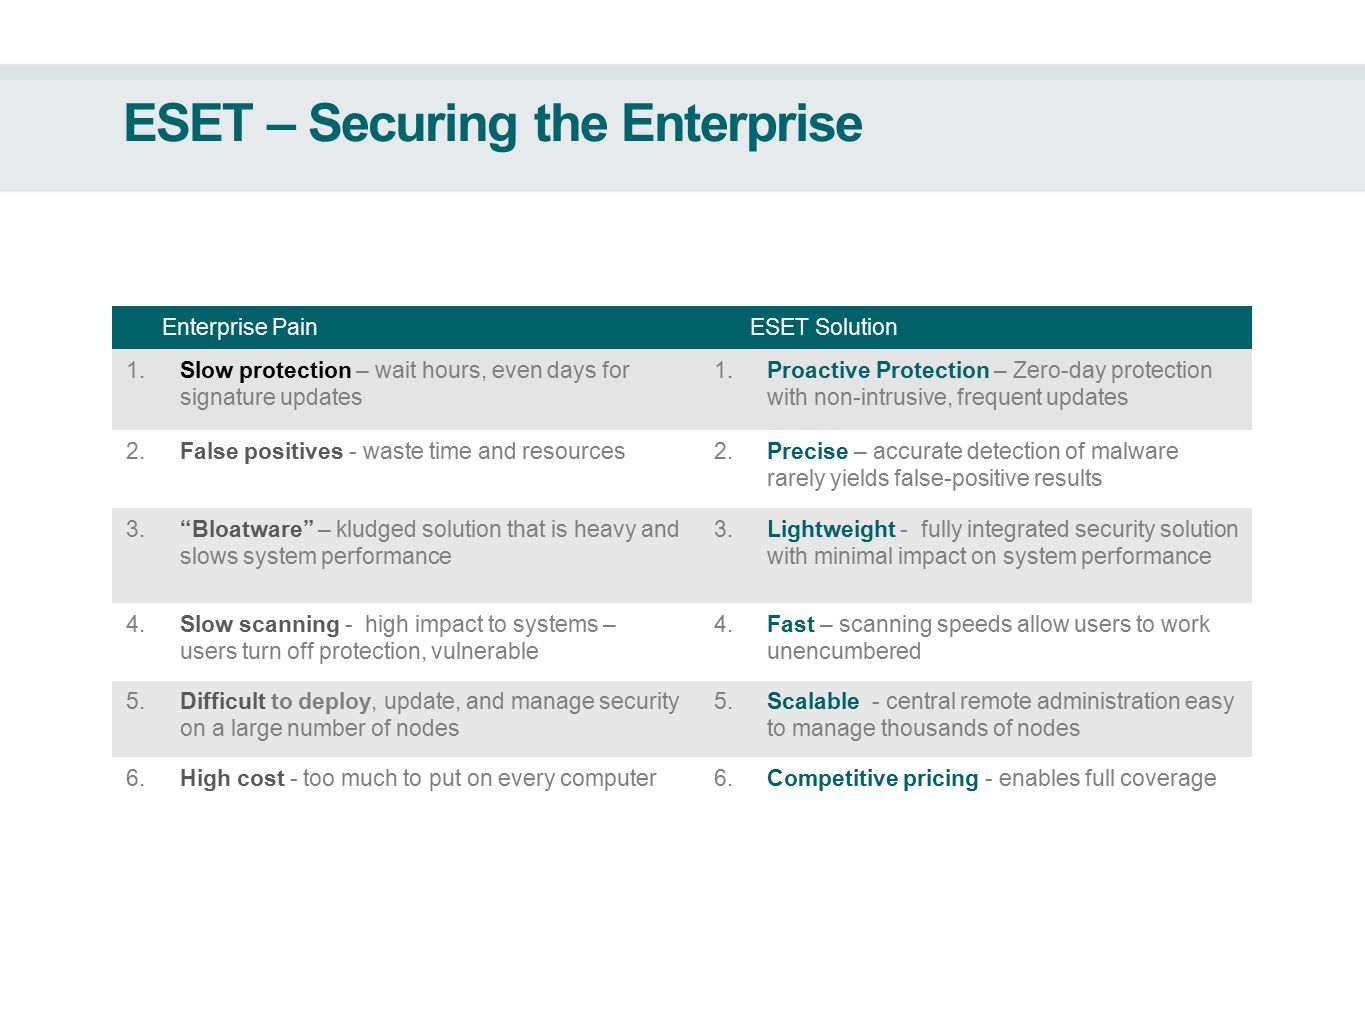 ESET – Securing the Enterprise Enterprise PainESET Solution 1.Slow protection – wait hours, even days for signature updates 1.Proactive Protection – Zero-day protection with non-intrusive, frequent updates 2.False positives - waste time and resources2.Precise – accurate detection of malware rarely yields false-positive results 3. Bloatware – kludged solution that is heavy and slows system performance 3.Lightweight - fully integrated security solution with minimal impact on system performance 4.Slow scanning - high impact to systems – users turn off protection, vulnerable 4.Fast – scanning speeds allow users to work unencumbered 5.Difficult to deploy, update, and manage security on a large number of nodes 5.Scalable - central remote administration easy to manage thousands of nodes 6.High cost - too much to put on every computer6.Competitive pricing - enables full coverage